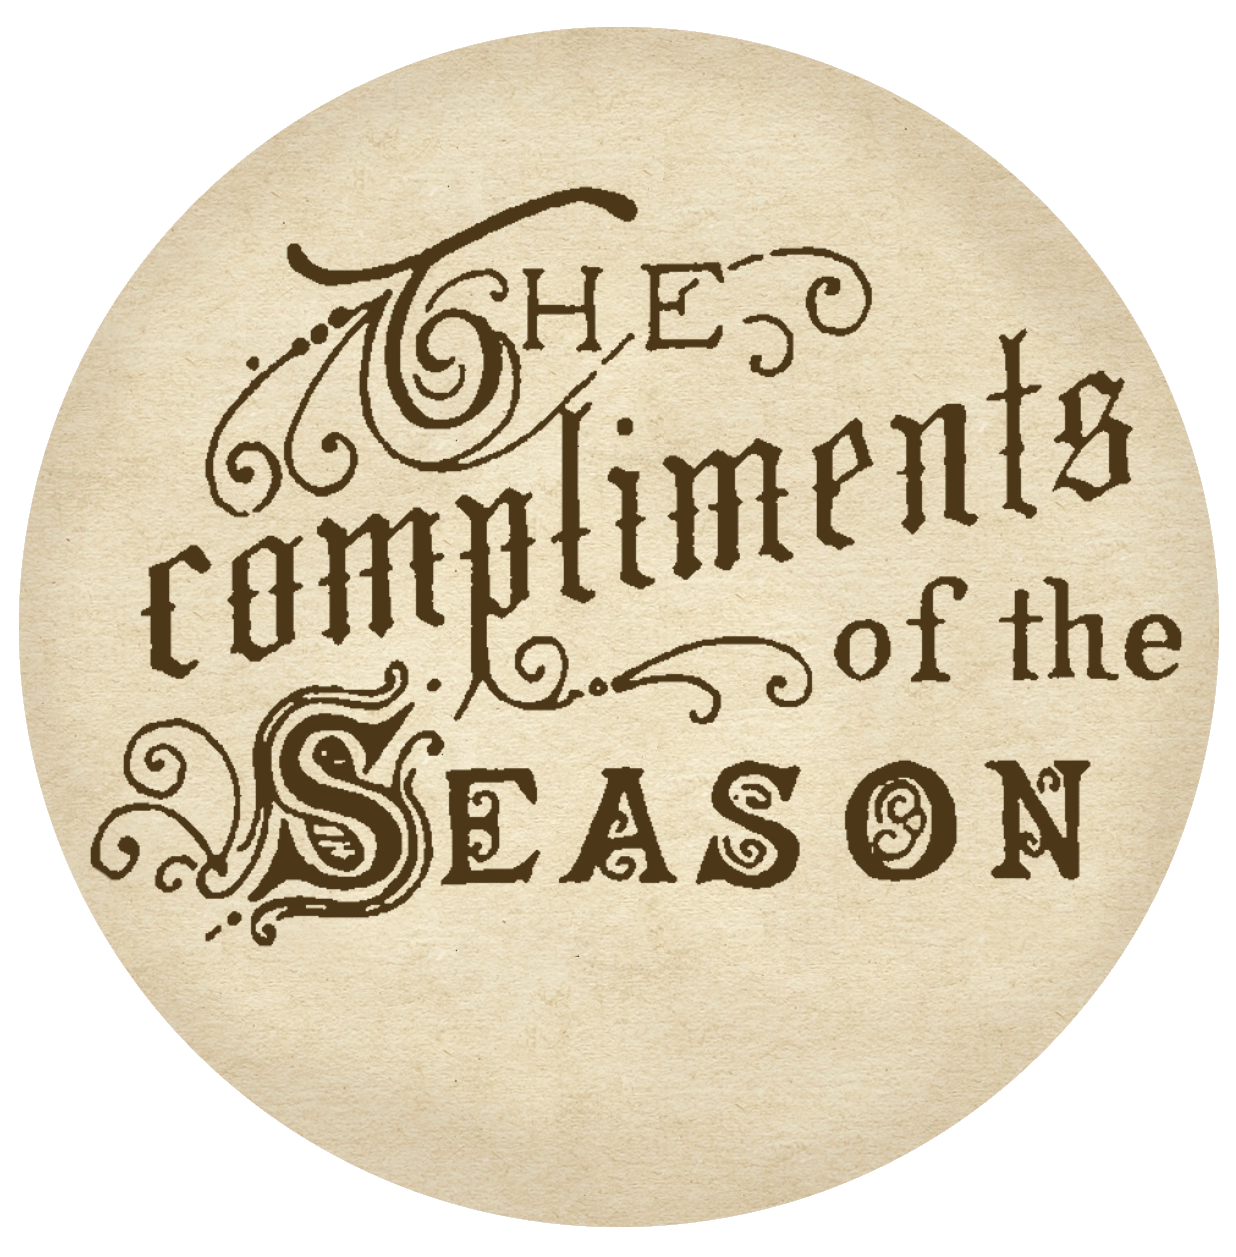 What does the phrase 'compliments of the season' mean? - Quora